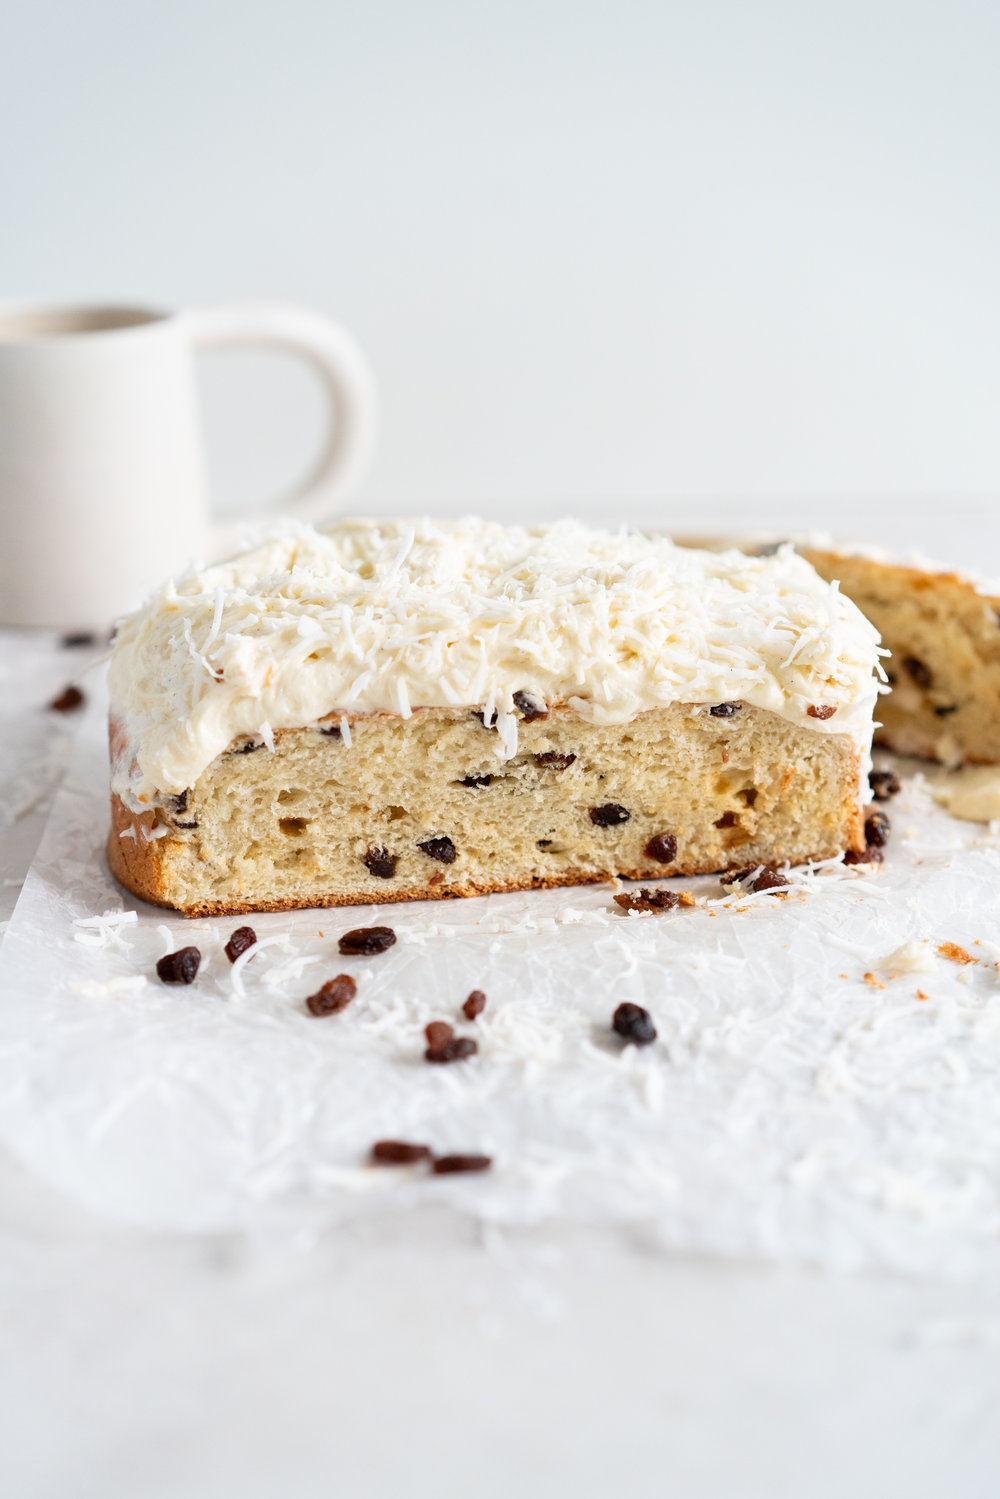 Boston Bun is a raisin brioche bun, covered with vanilla icing, and finished with shredded coconut. It is super easy to make, requires no fancy equipment or dough twisting, and makes the perfect treat with a cup of coffee or to entertain guests. #bostonbun #sallylunn #raisinbrioche